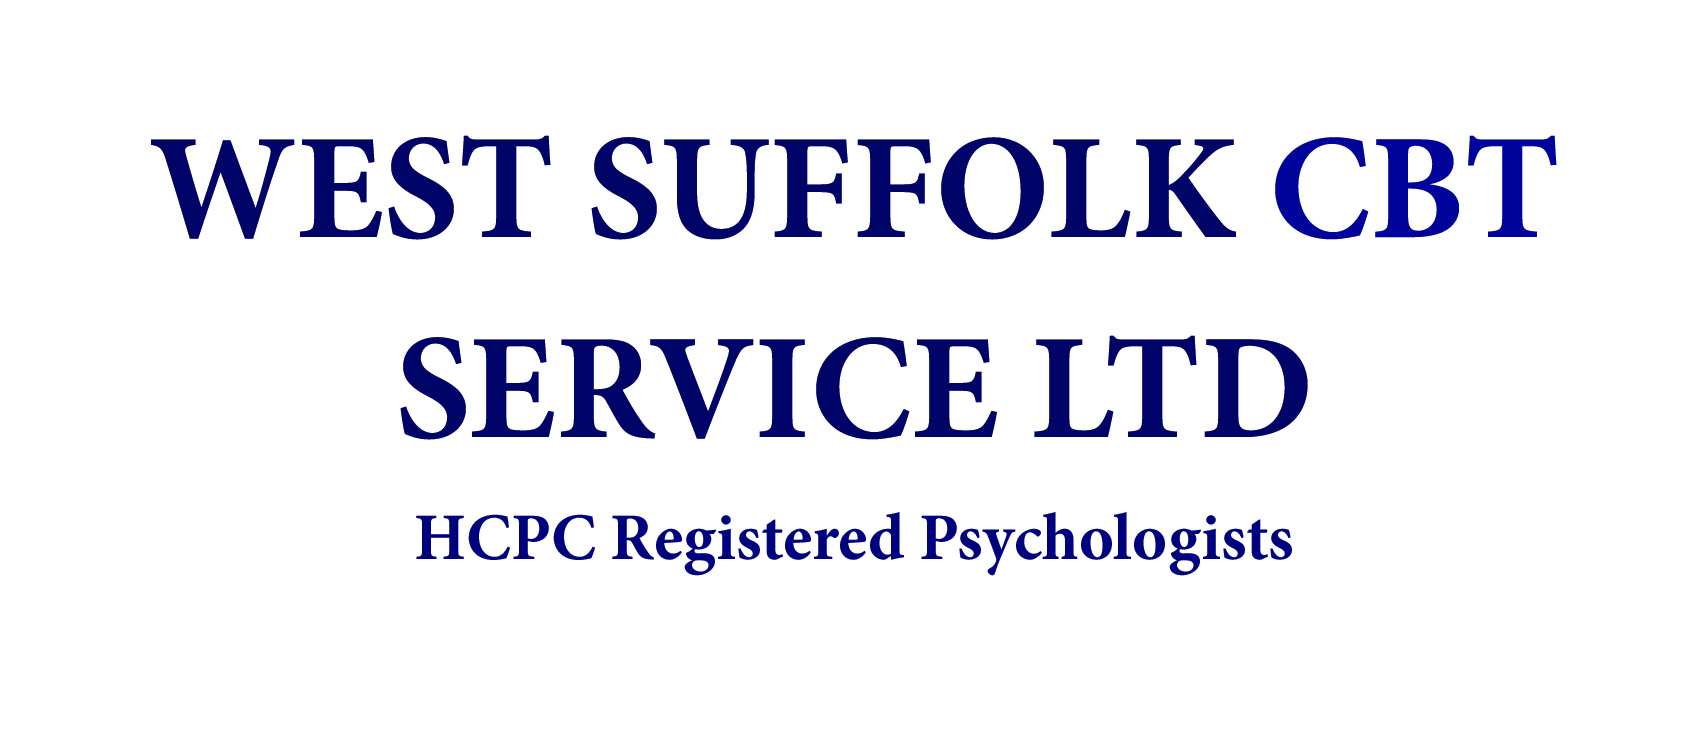 West Suffolk CBT Service Ltd